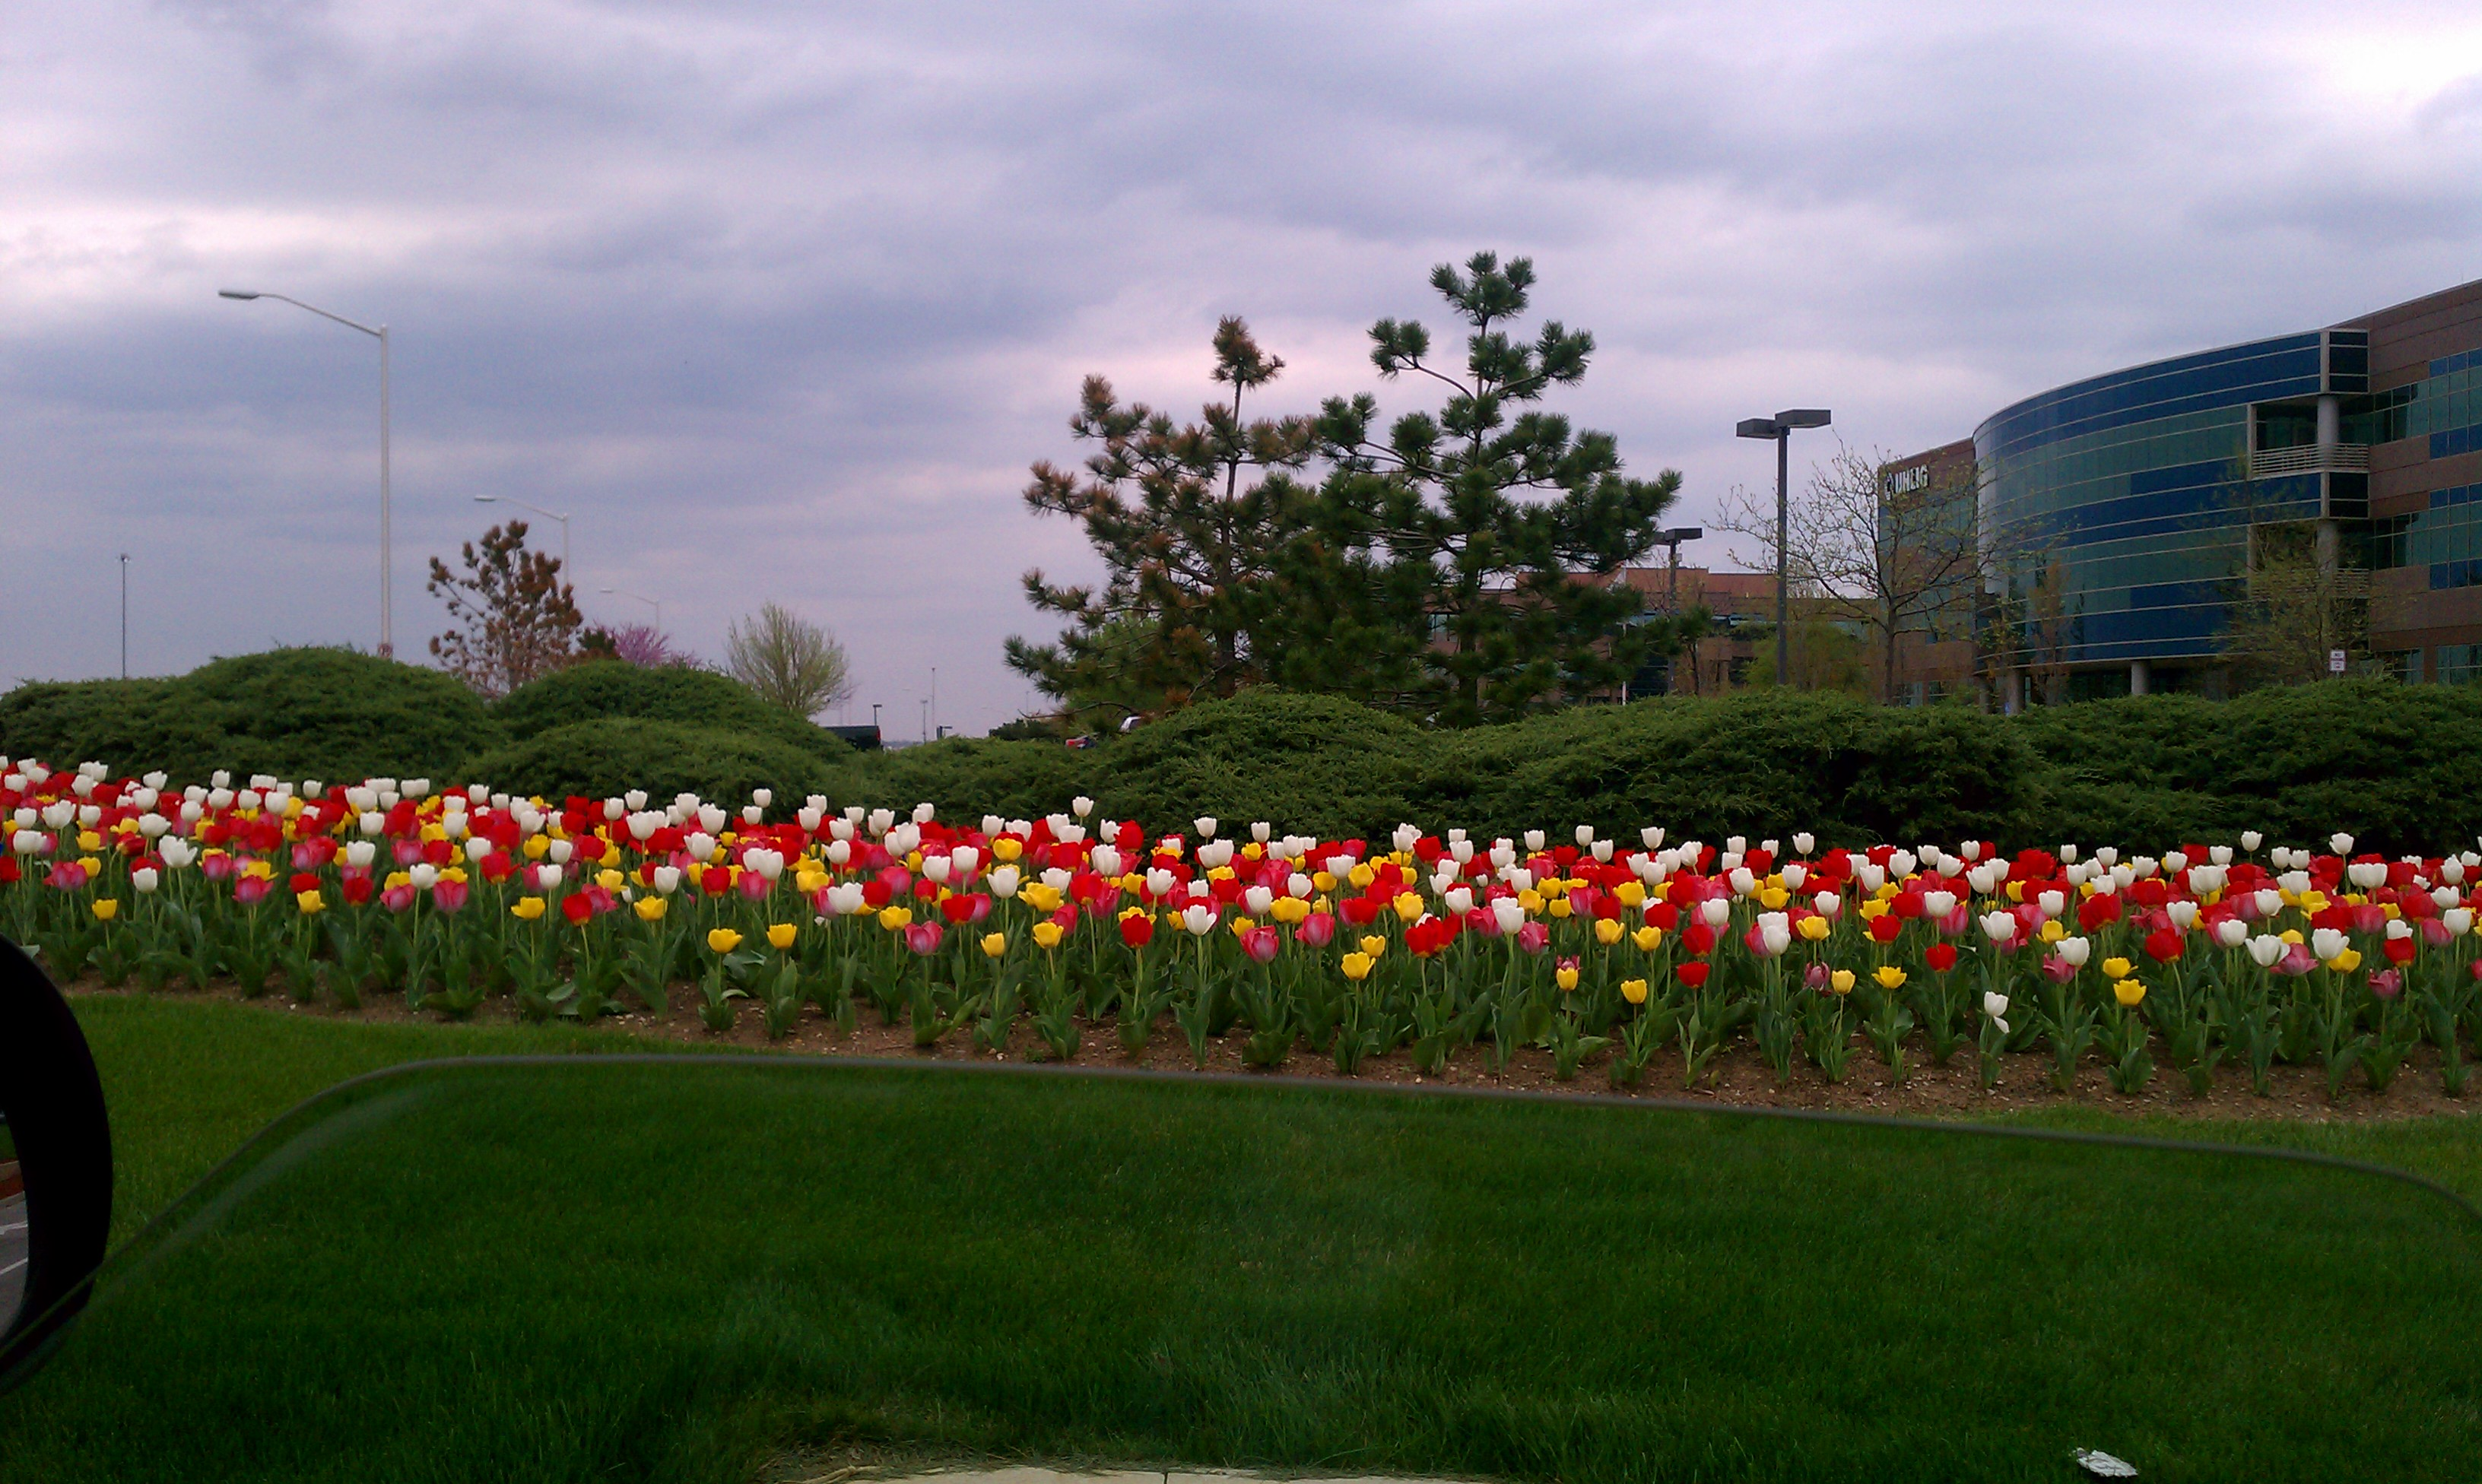 Tulips! Spring! Bright colors! Flowers swaying in the wind!